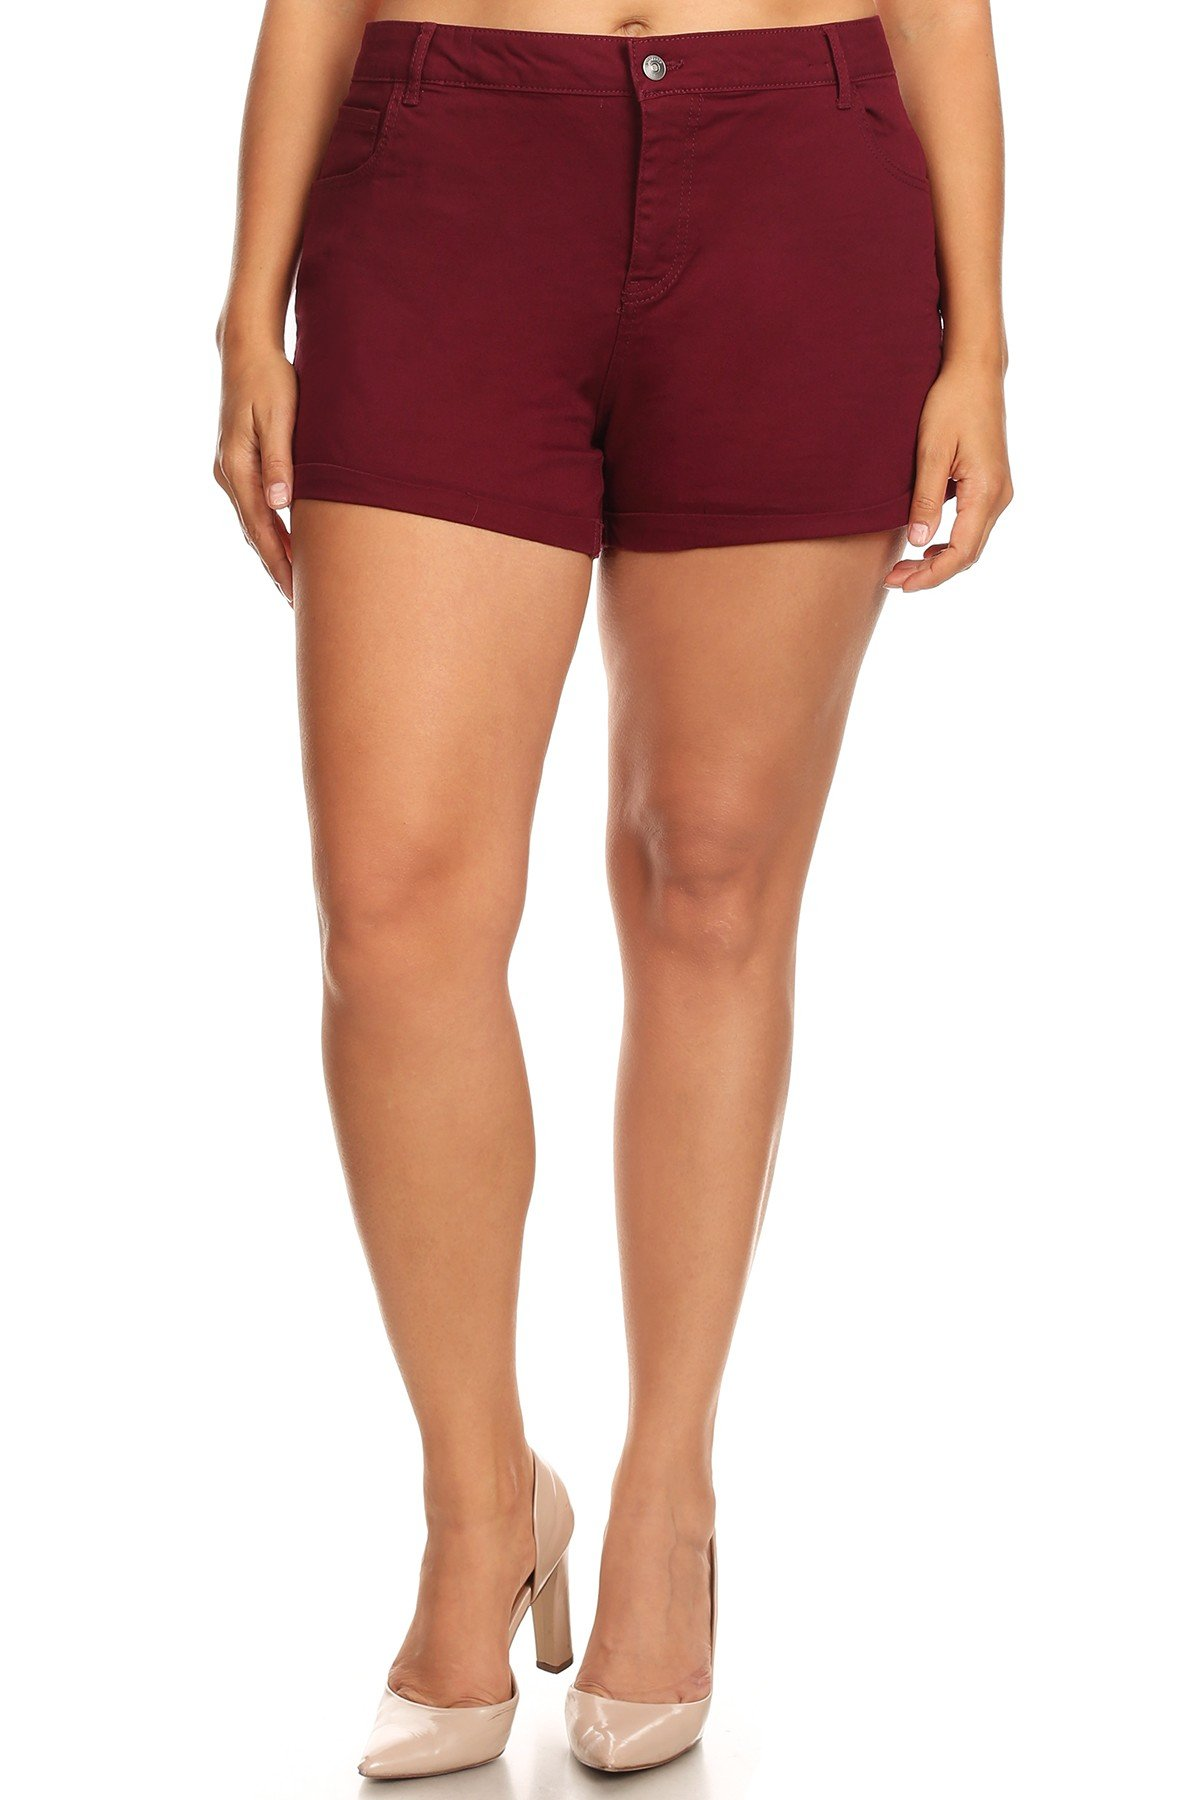 Women's Plus Size One Button Cuffed Cotton Shorts (1X, Burgundy)